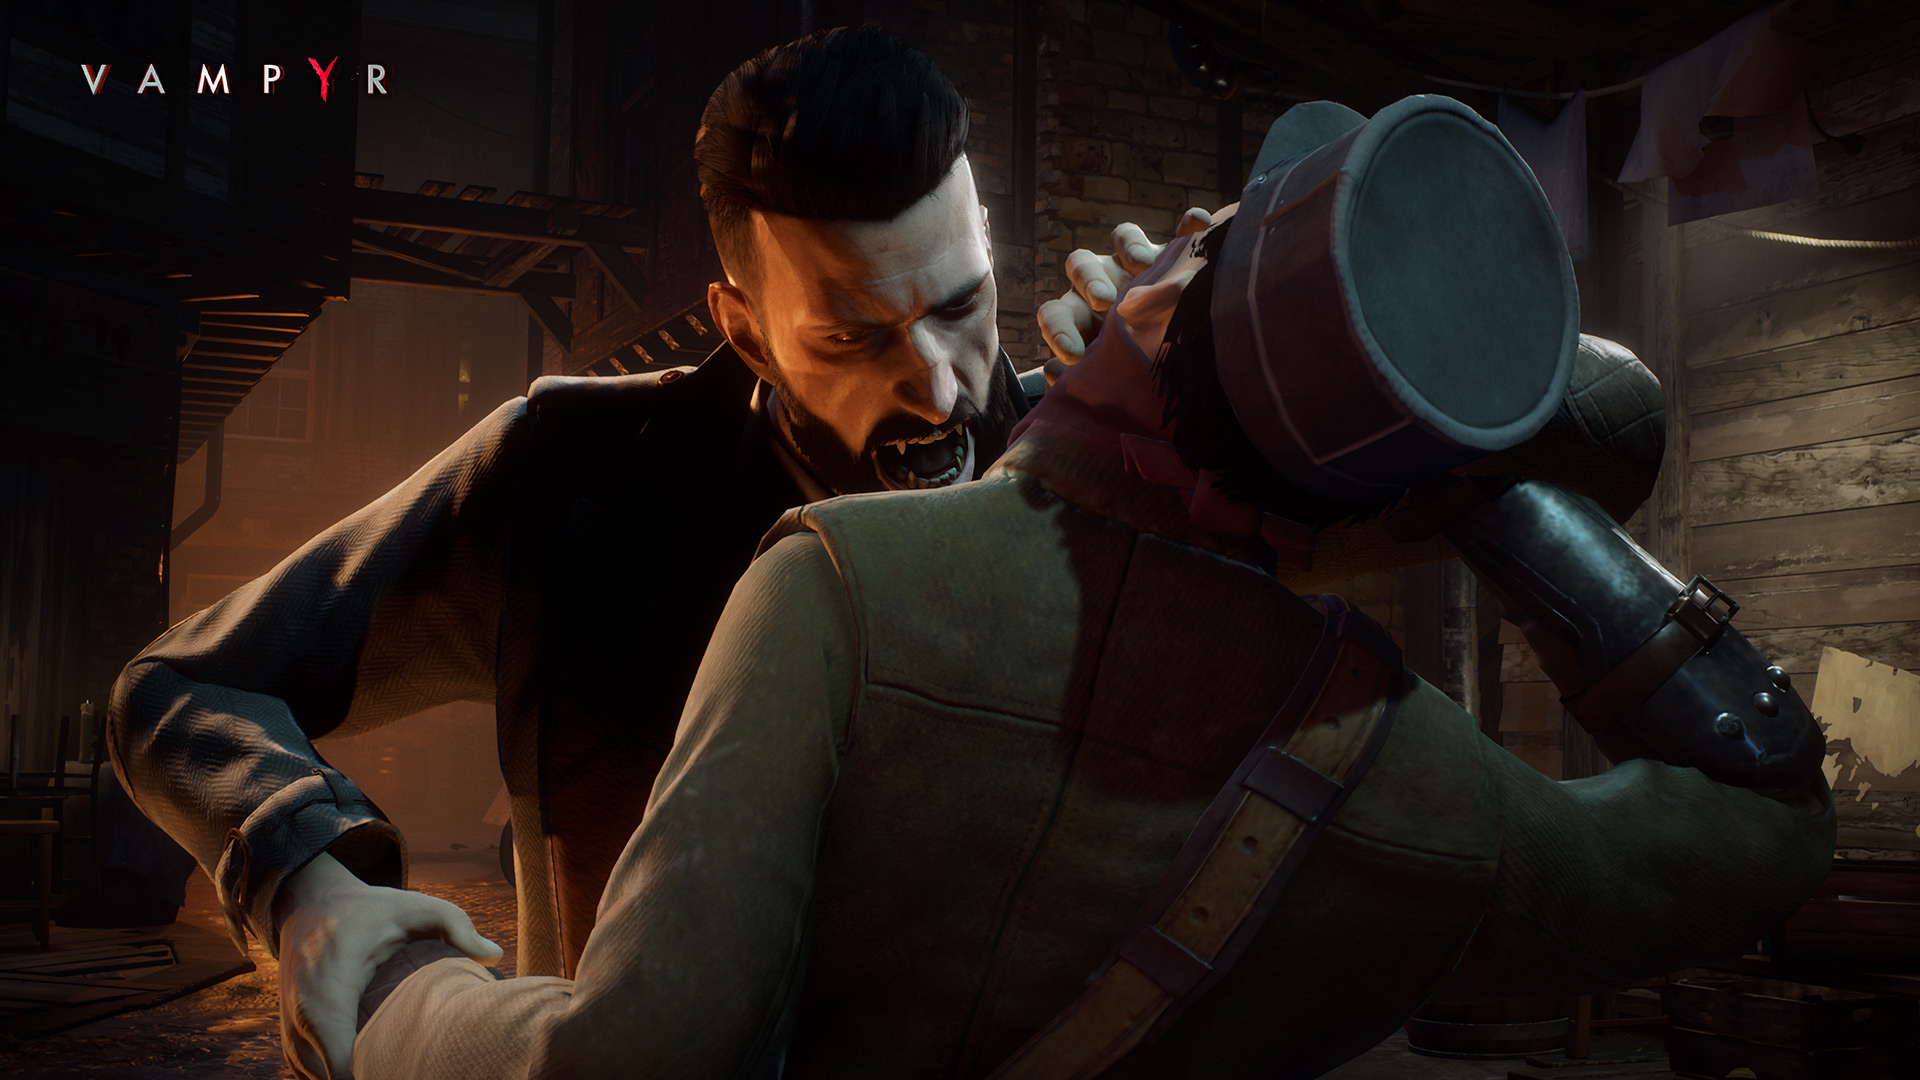 Vampyr review - bloodsucking leech